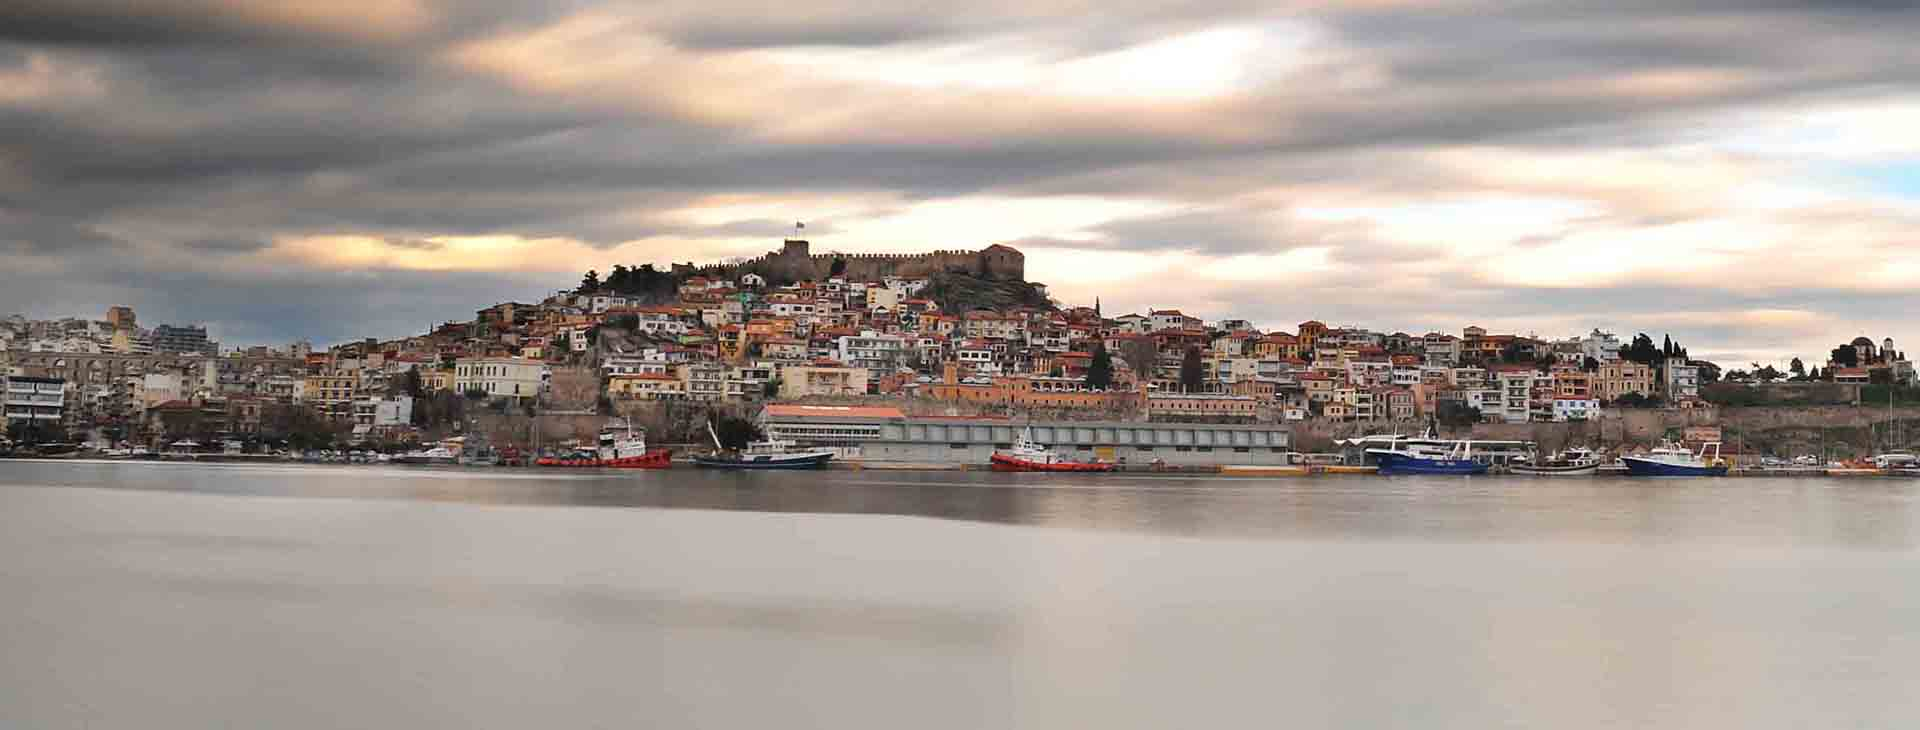 Castle of Kavala and old town